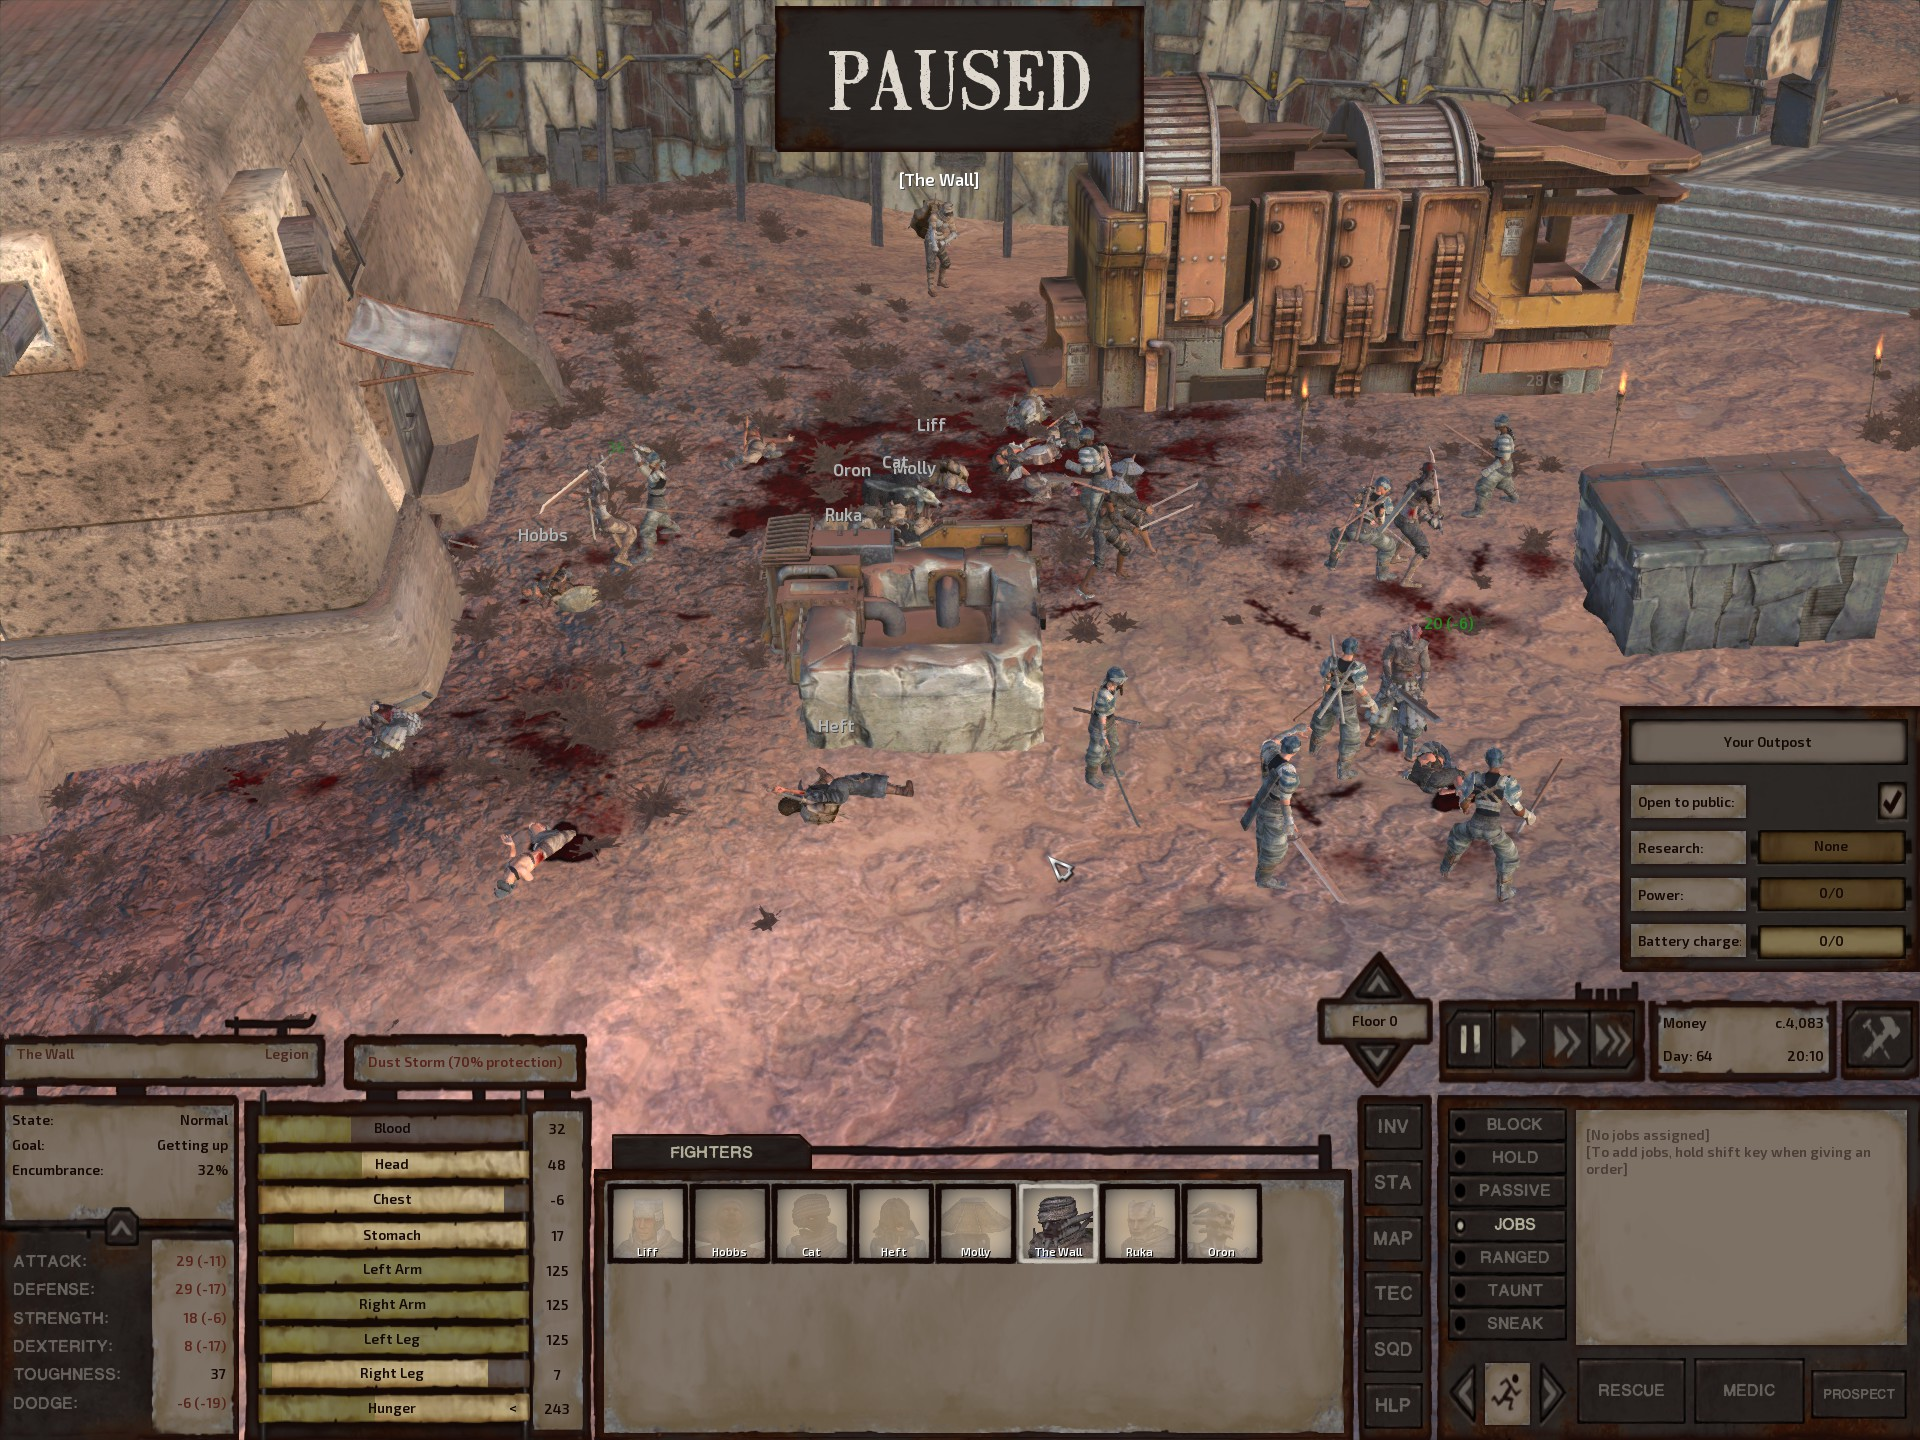 Kenshi - open-ended sandbox RPG set in a desert world | Page